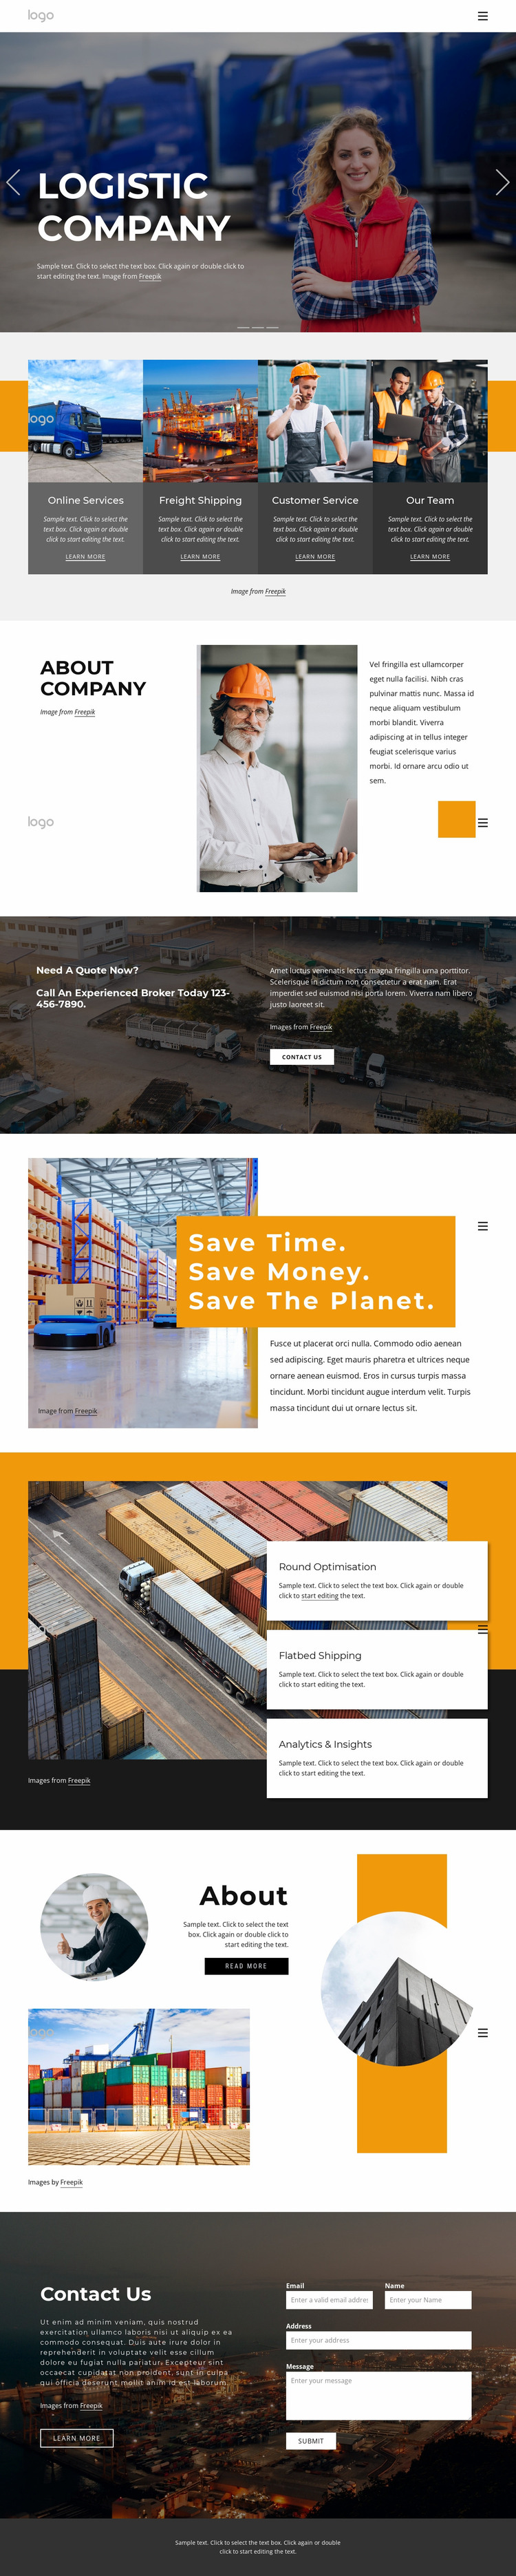 Shipping services and logistics Website Mockup